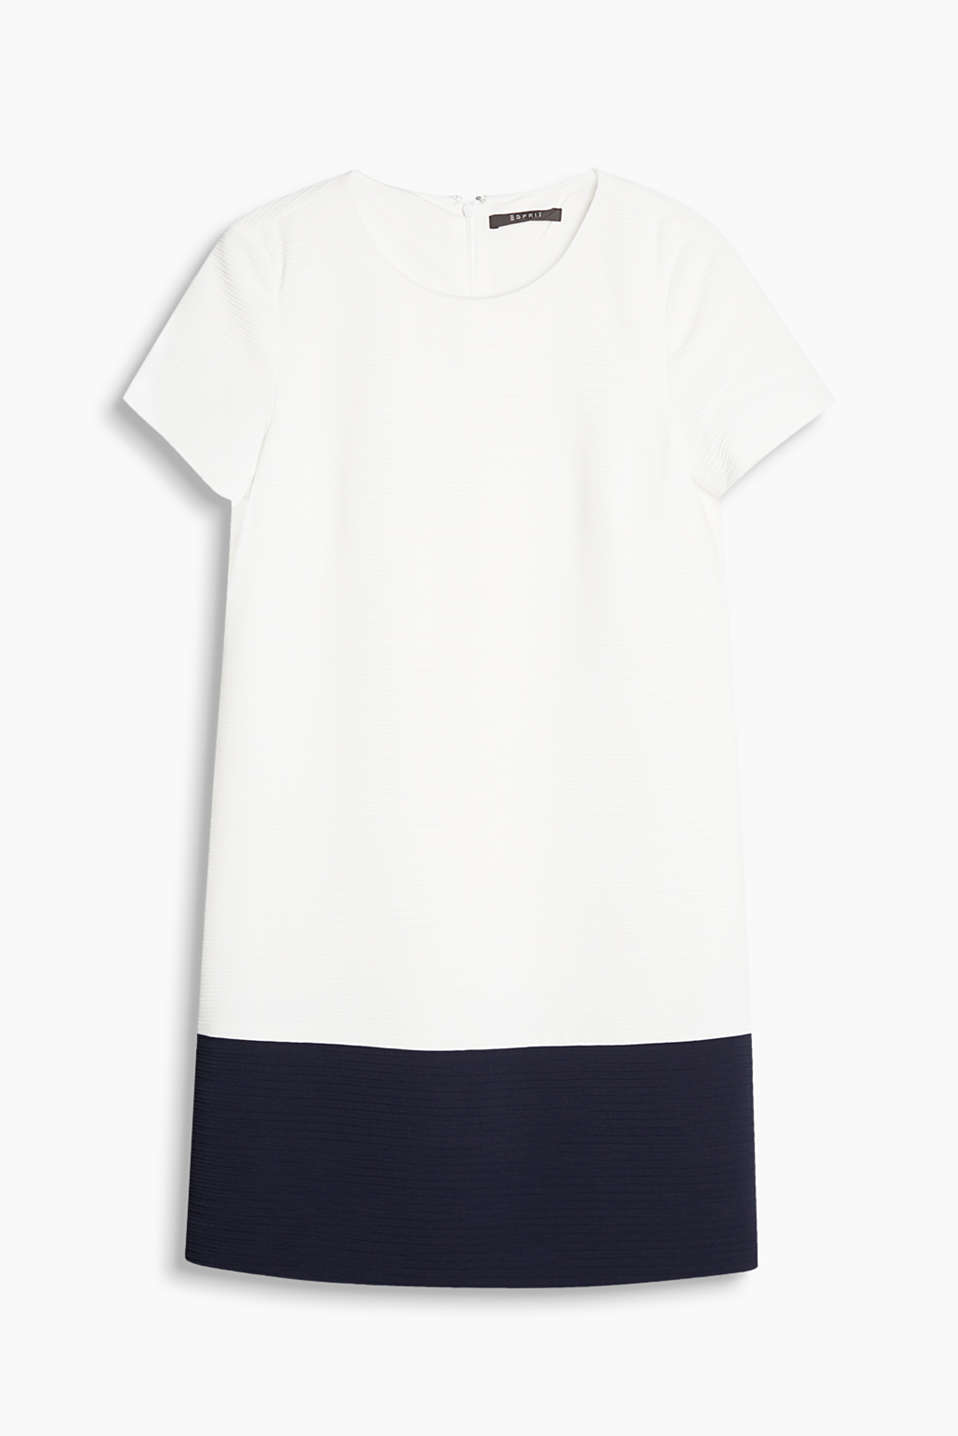 Made of textured fabric: short sleeve dress in a flattering H line